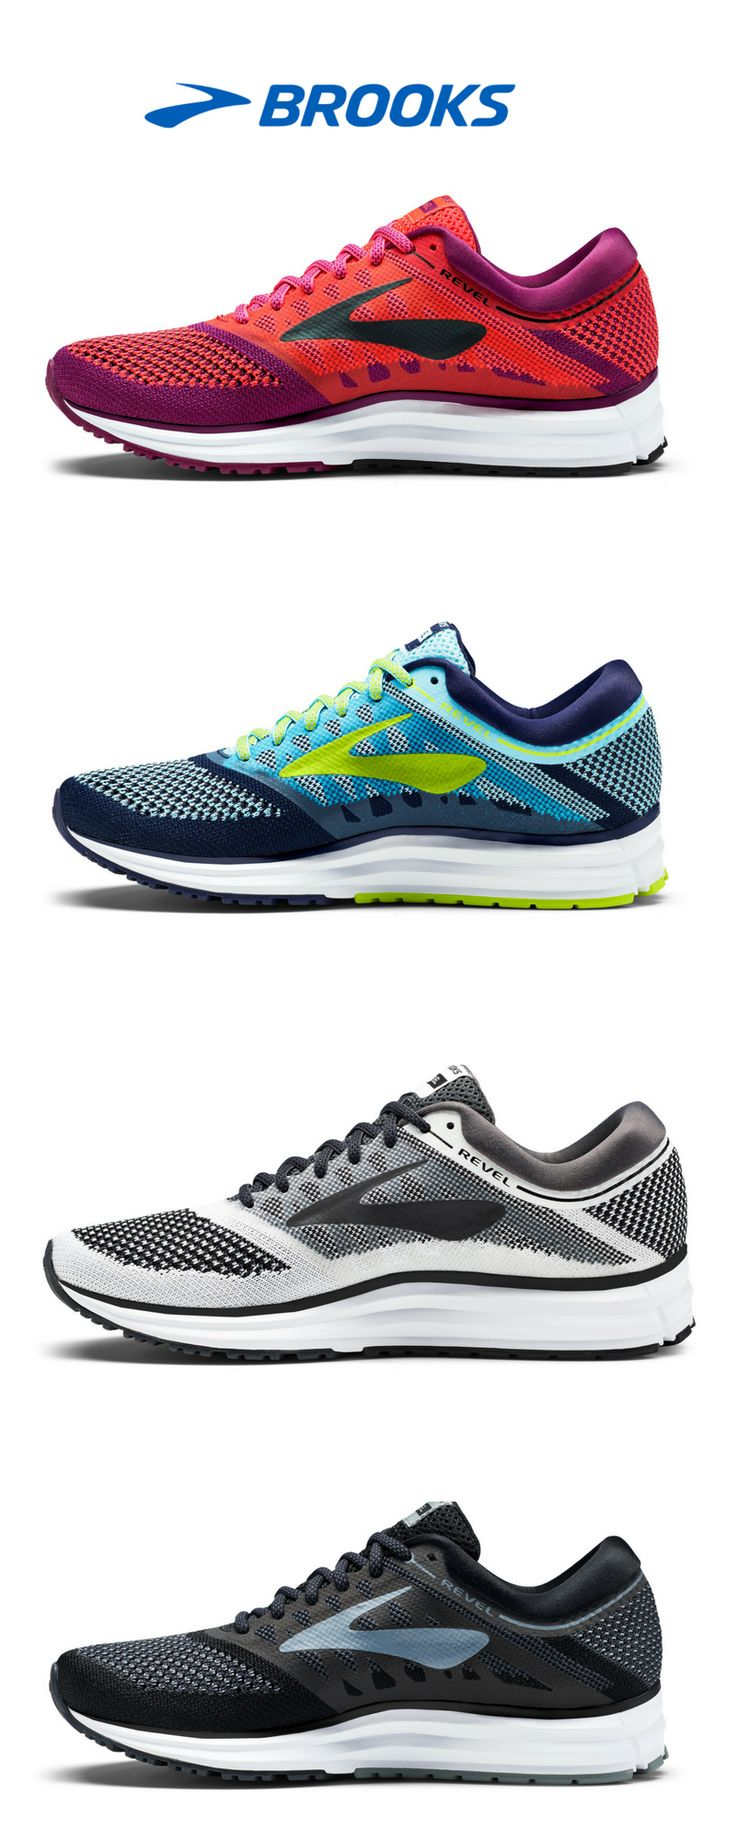 The Revel | Running Shoes from Brooks Running | Styled to go anywhere, the women's Revel running shoe is our most comfortable shoe on foot.